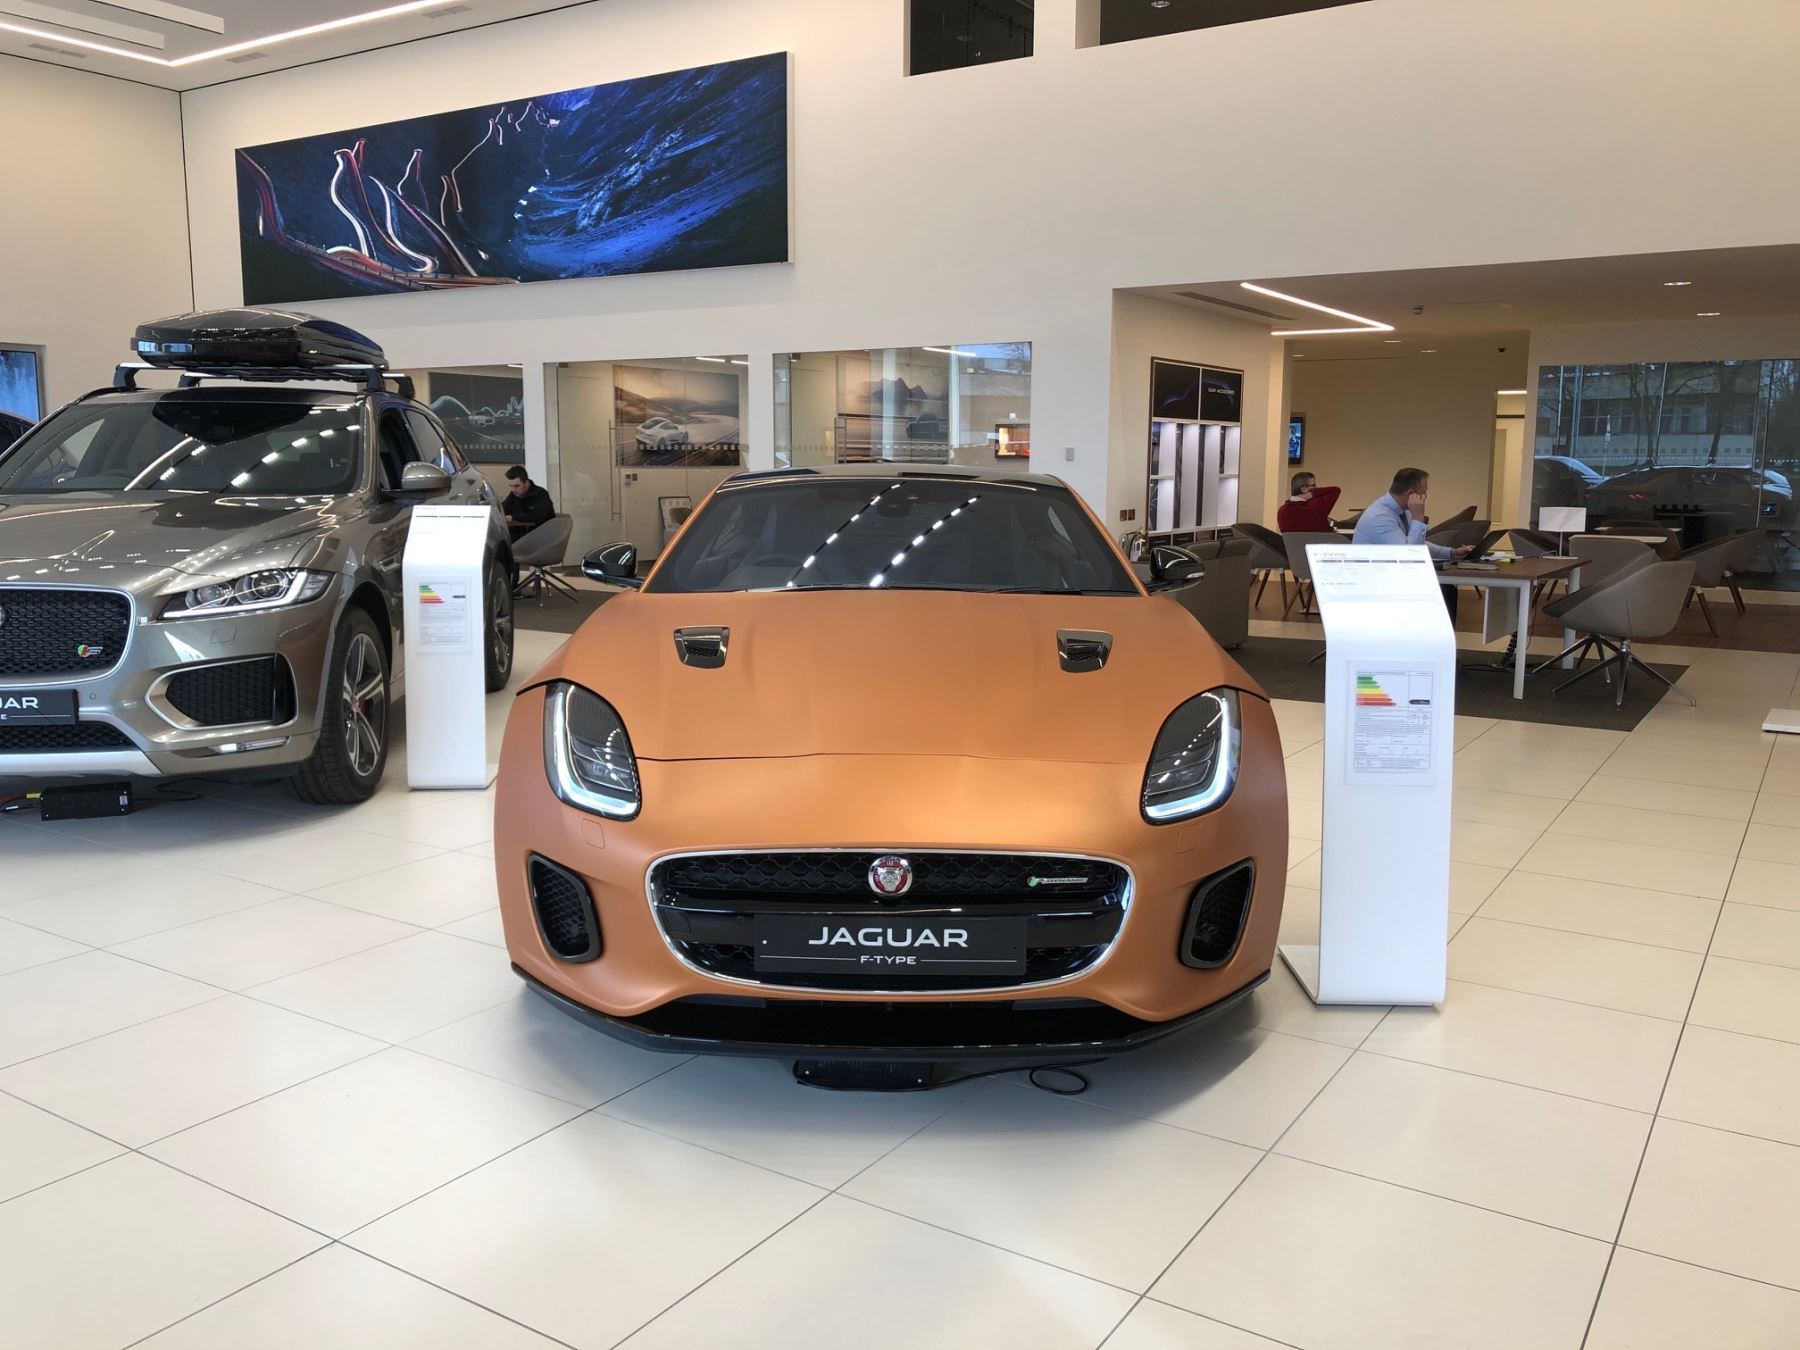 Jaguar F-TYPE Coupe 3.0 [380] Supercharged V6 R-Dynamic 2dr Auto AWD *MANAGERS SPECIAL* Automatic Coupe (2019) image